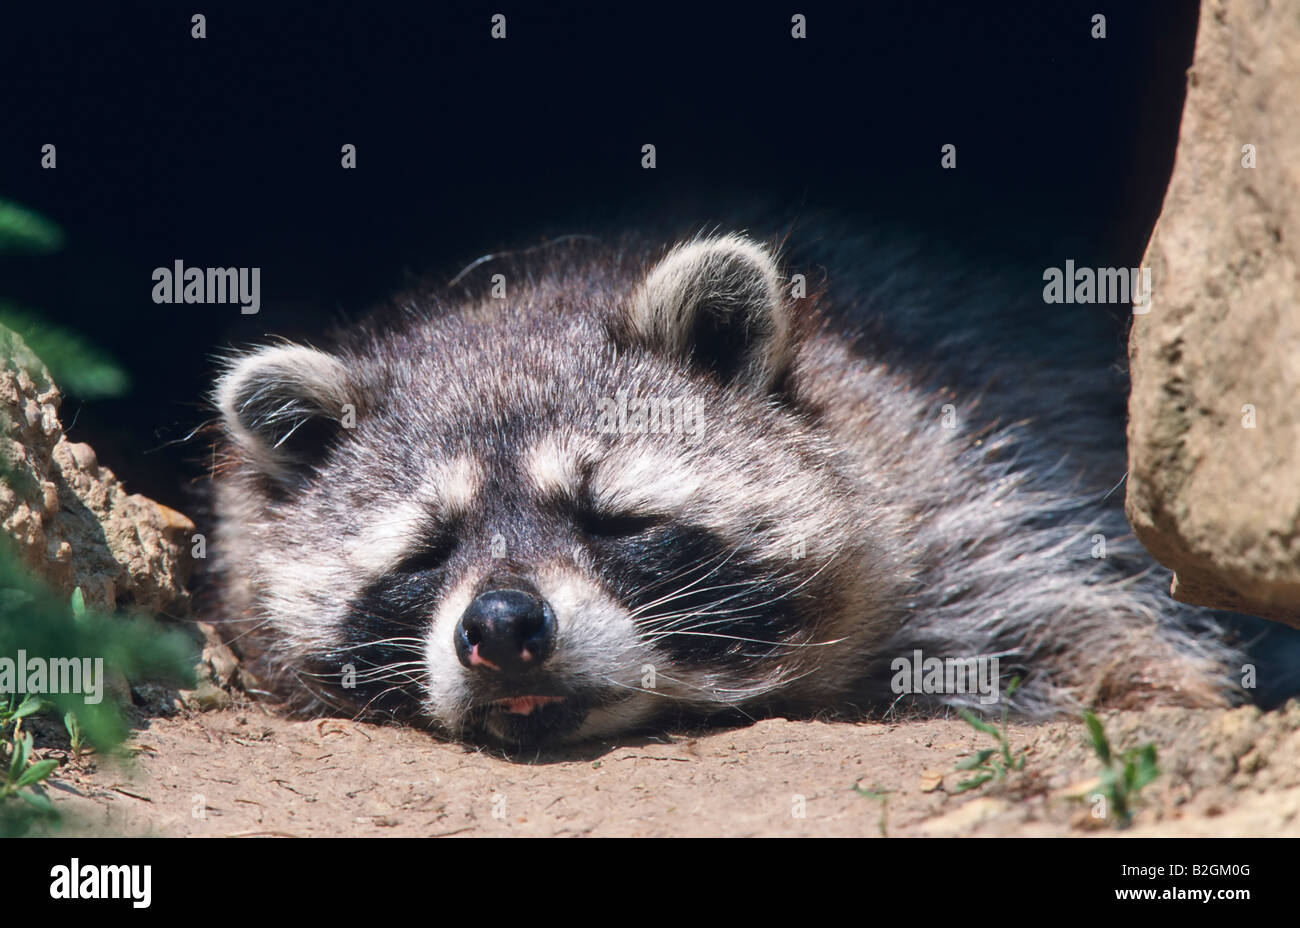 droll northern raccoon Procyon lotor relaxing germany zoo funny fun - Stock Image